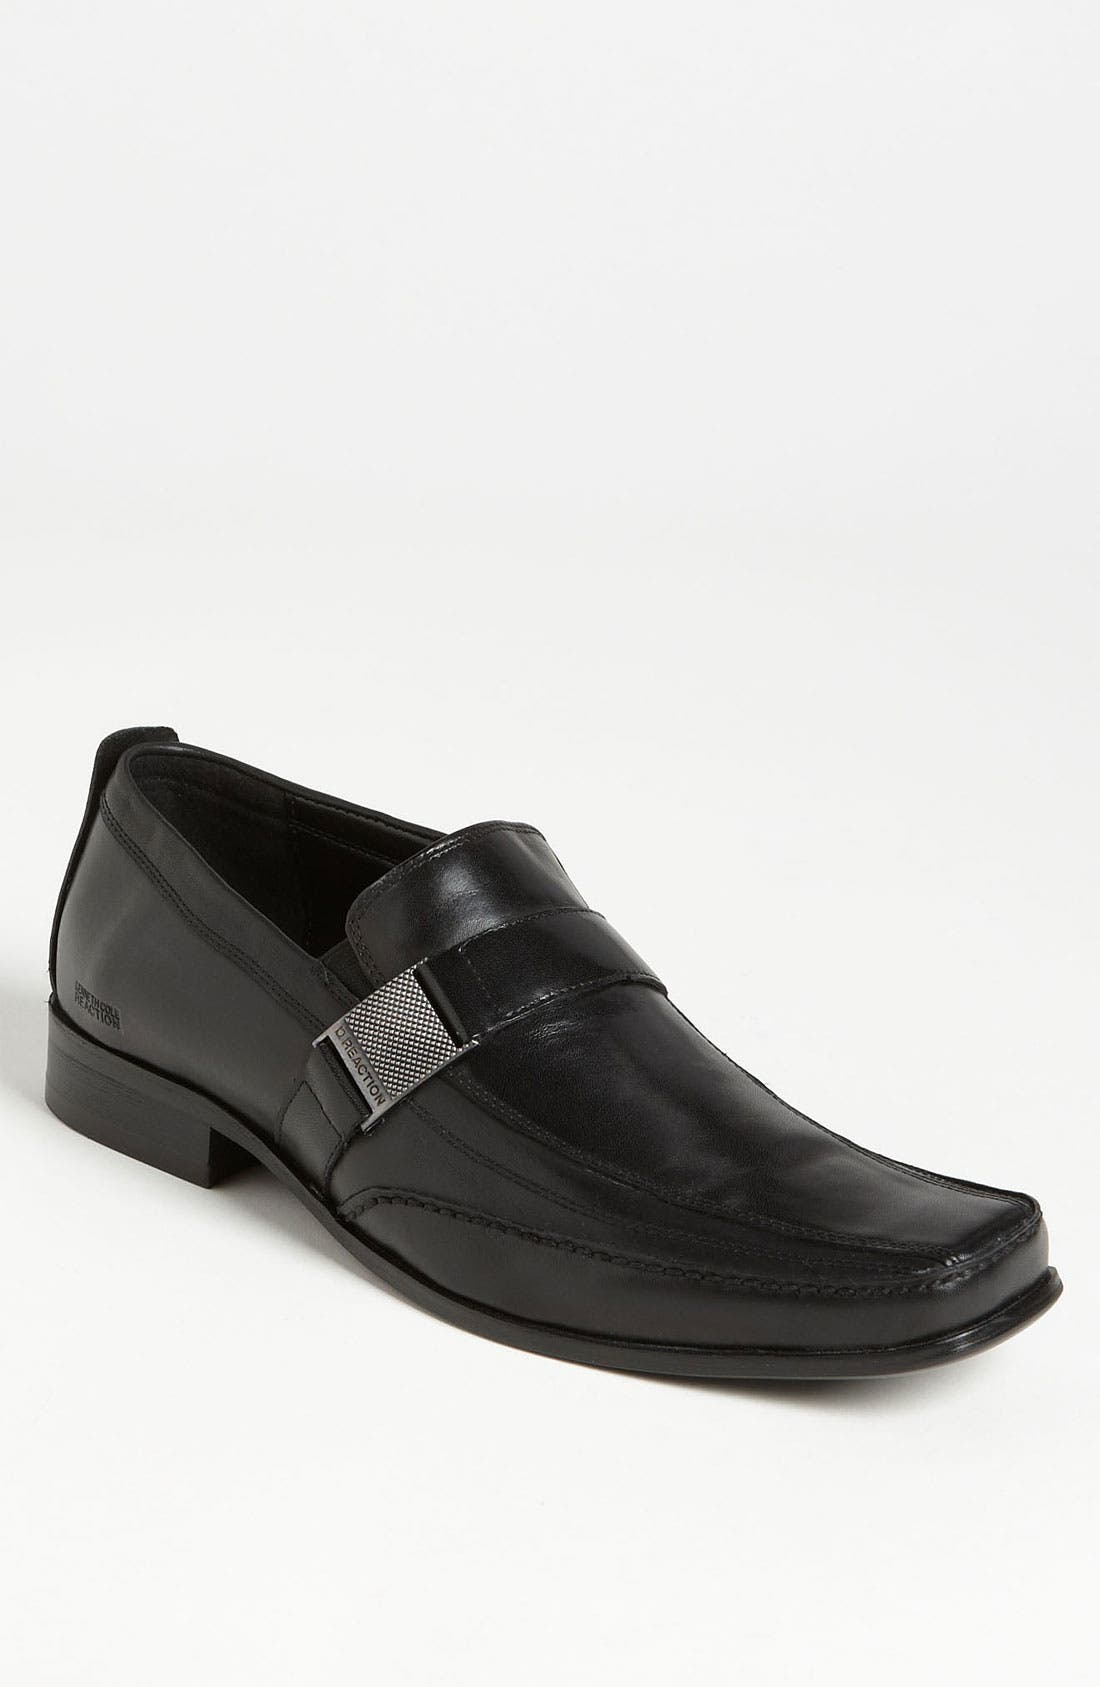 Alternate Image 1 Selected - Kenneth Cole Reaction 'Money Down' Loafer (Online Only)